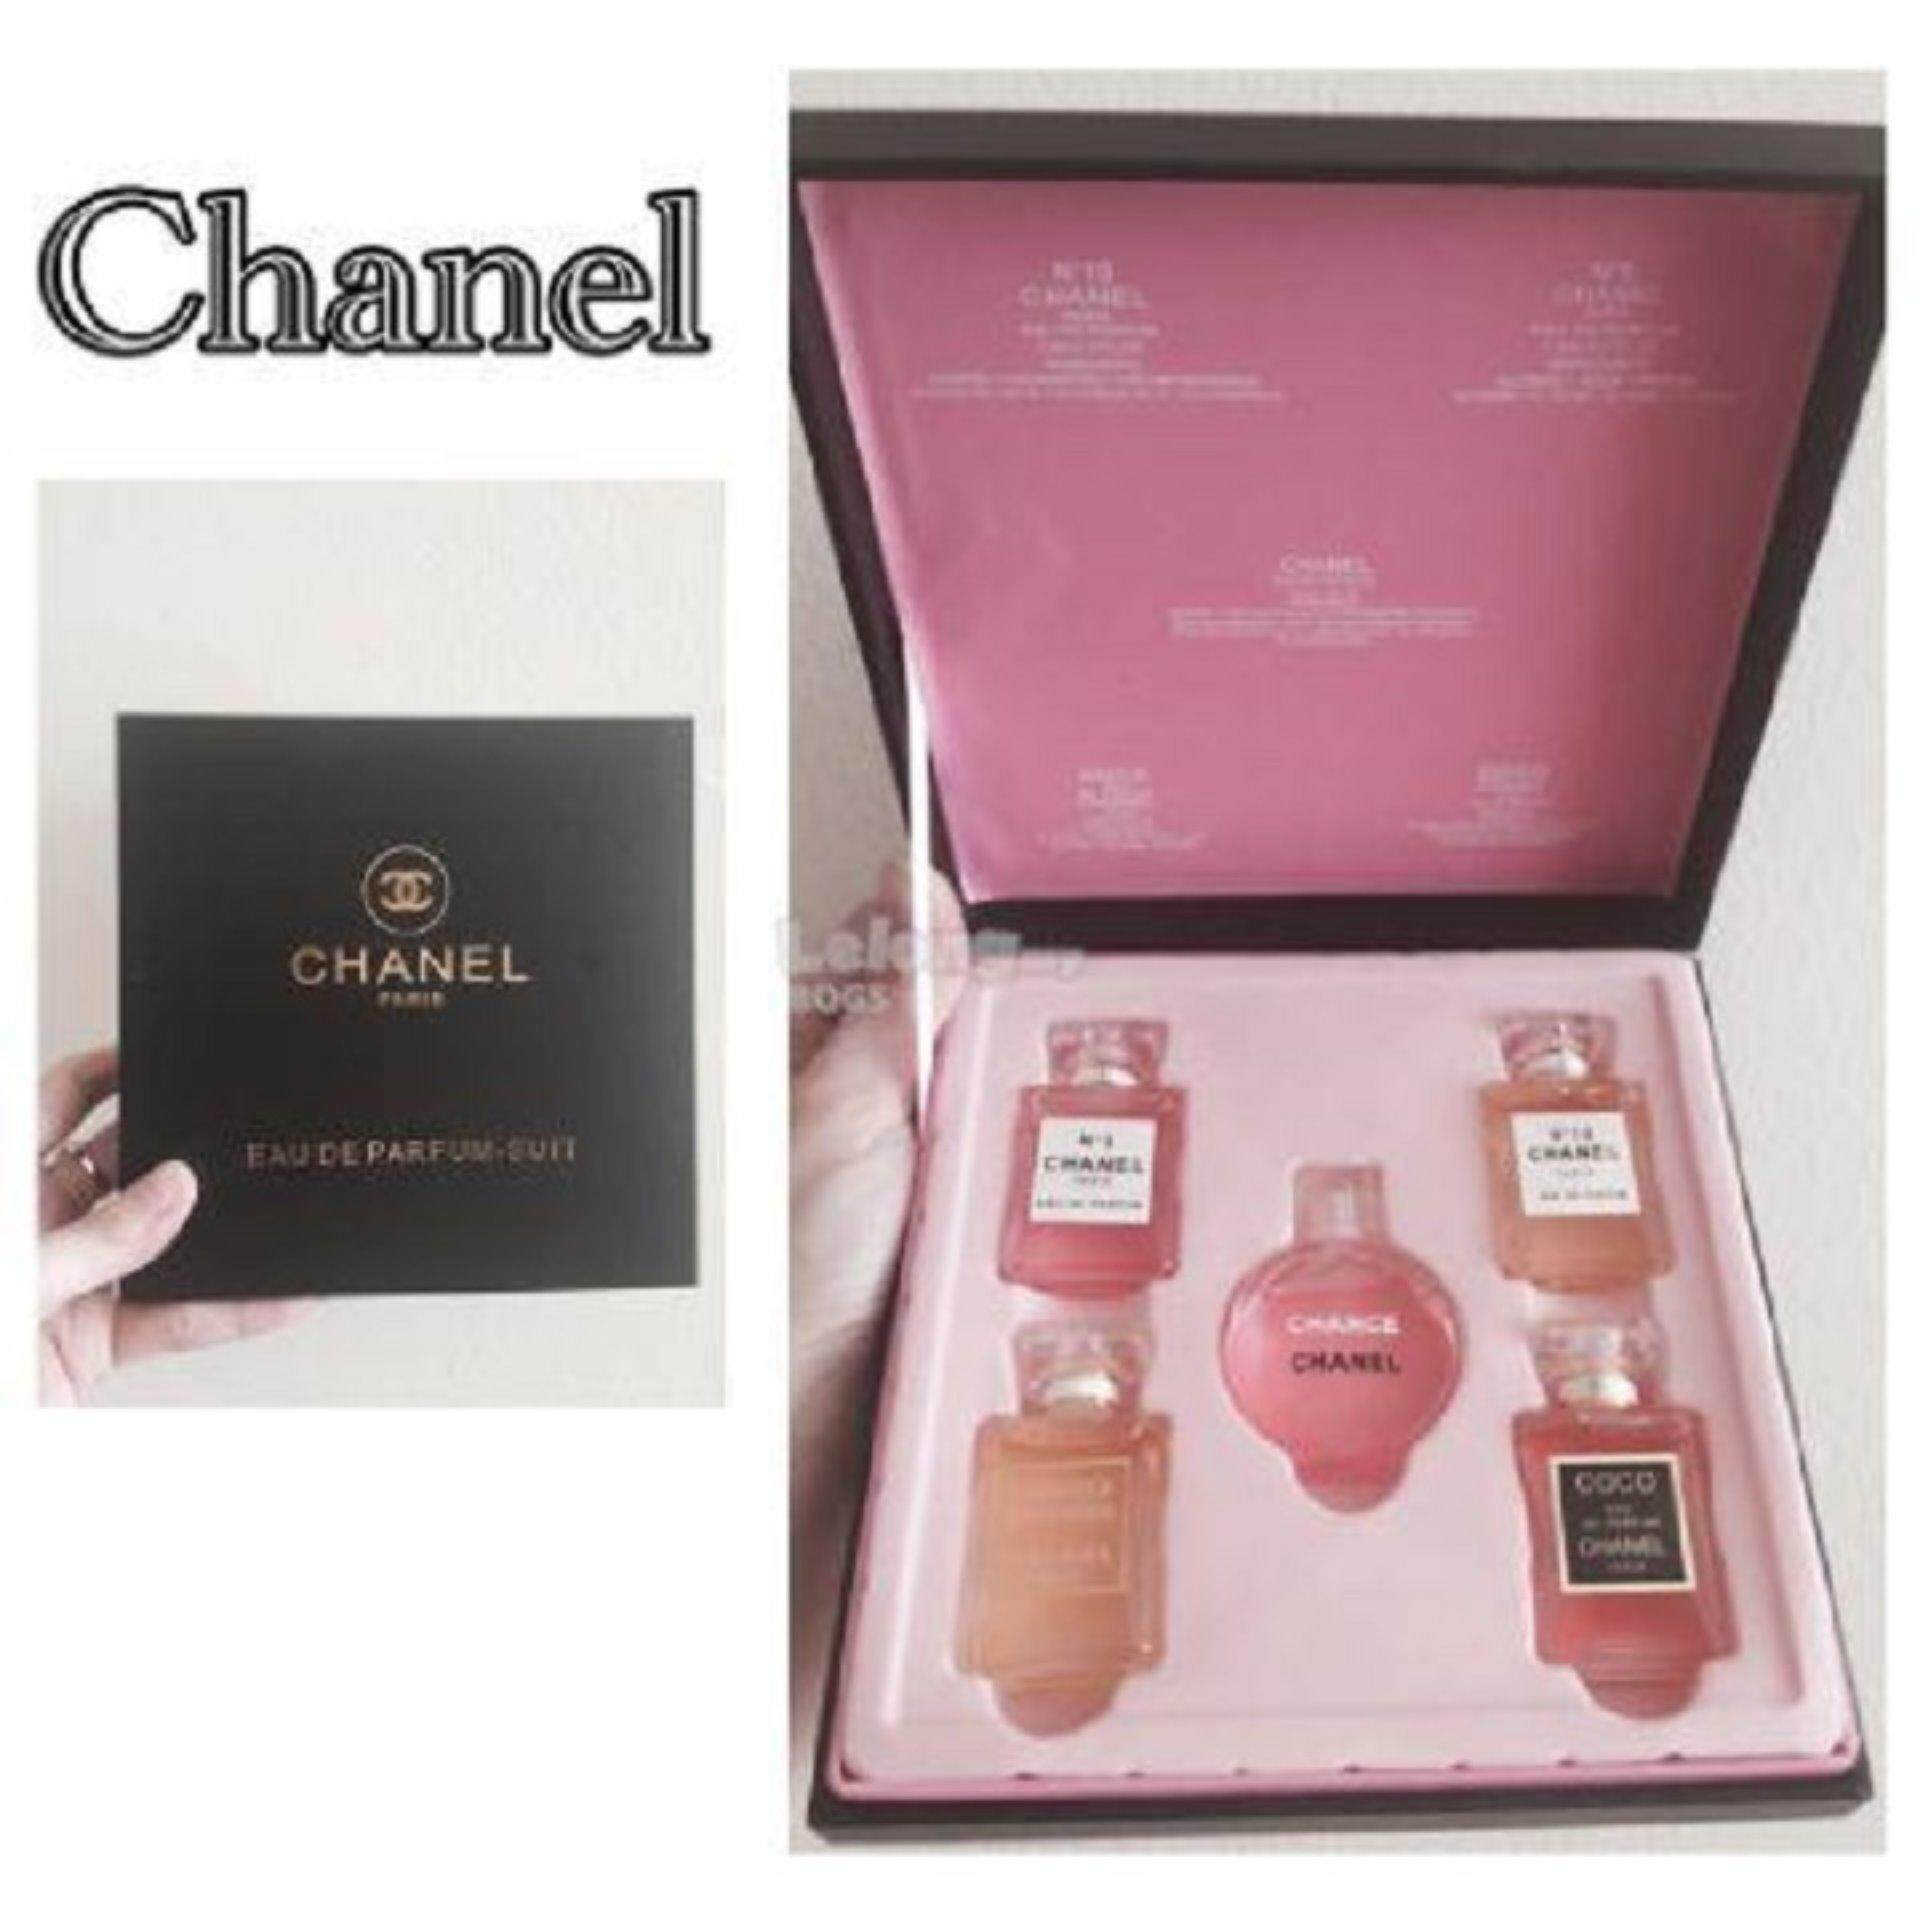 Chanel Travel Perfume Set of 5- PREMIUM GIFT BOX (Clearance Sale Below Cost)